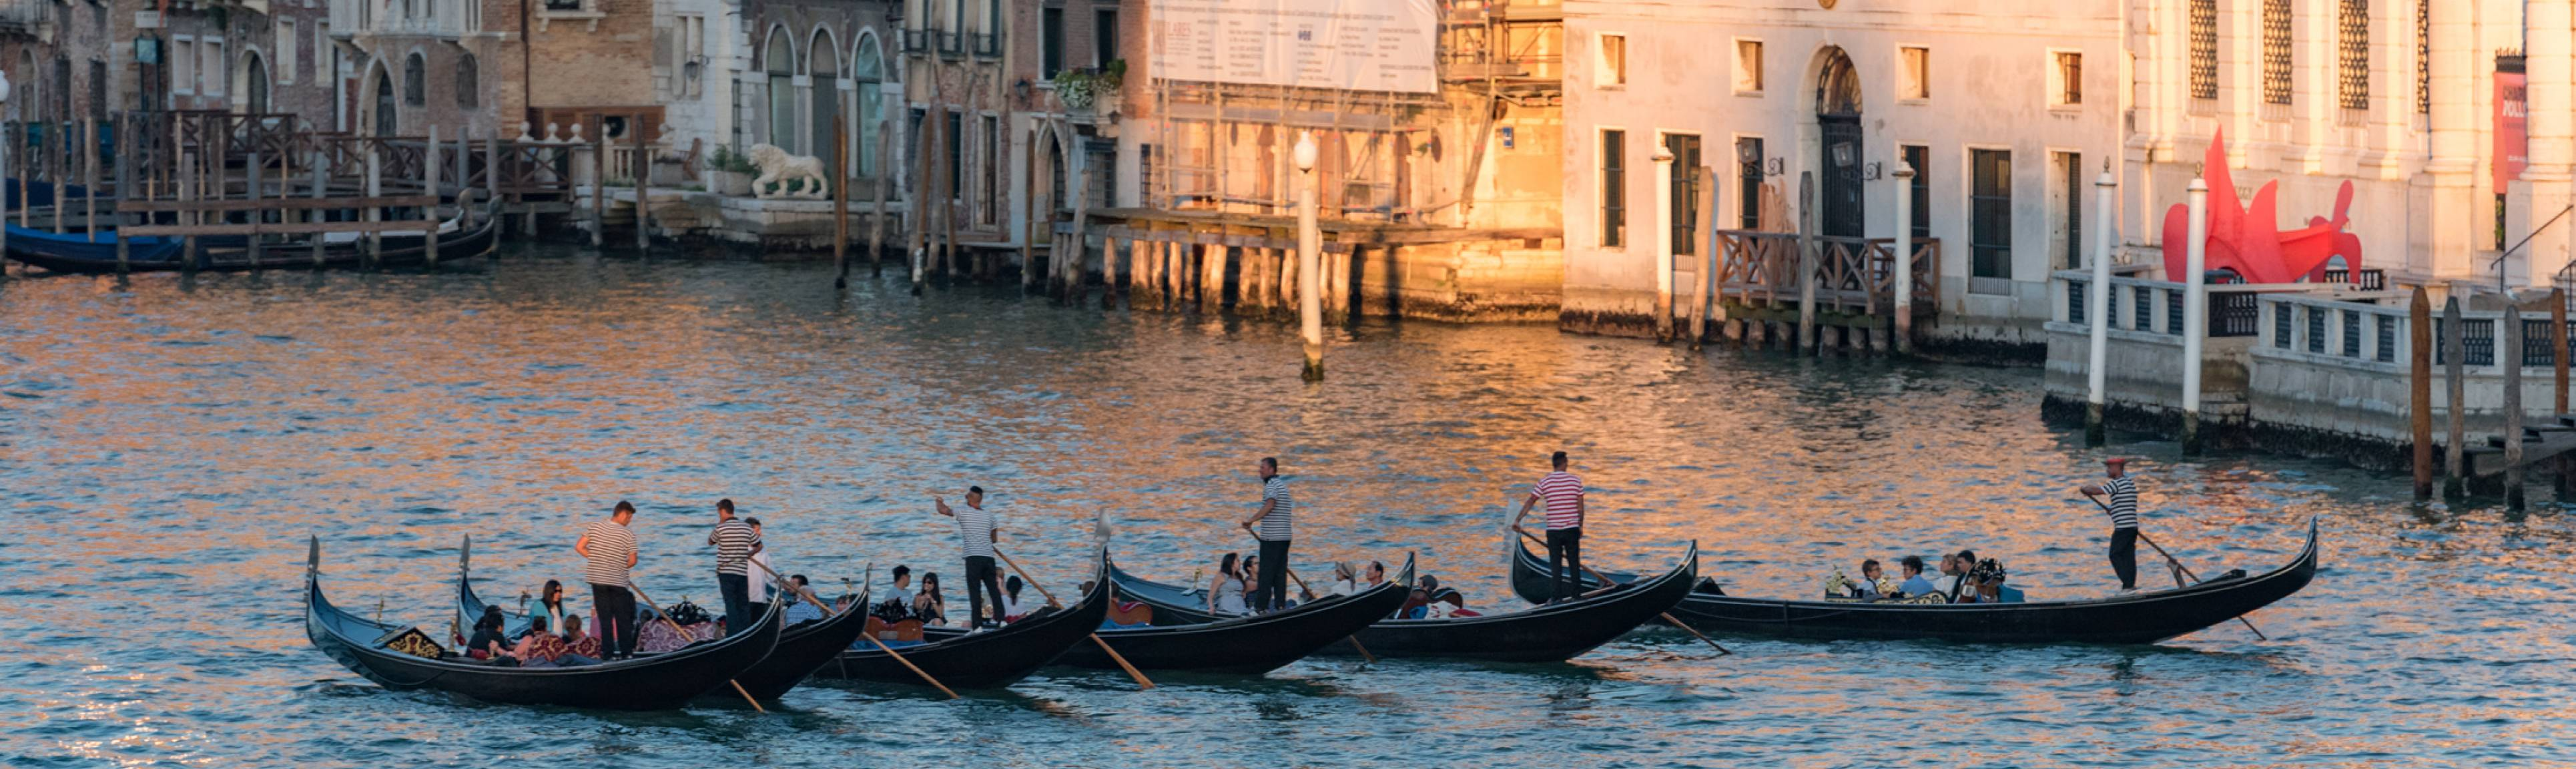 Sunset view of passenger-filled gondolas crossing the Grand Canal